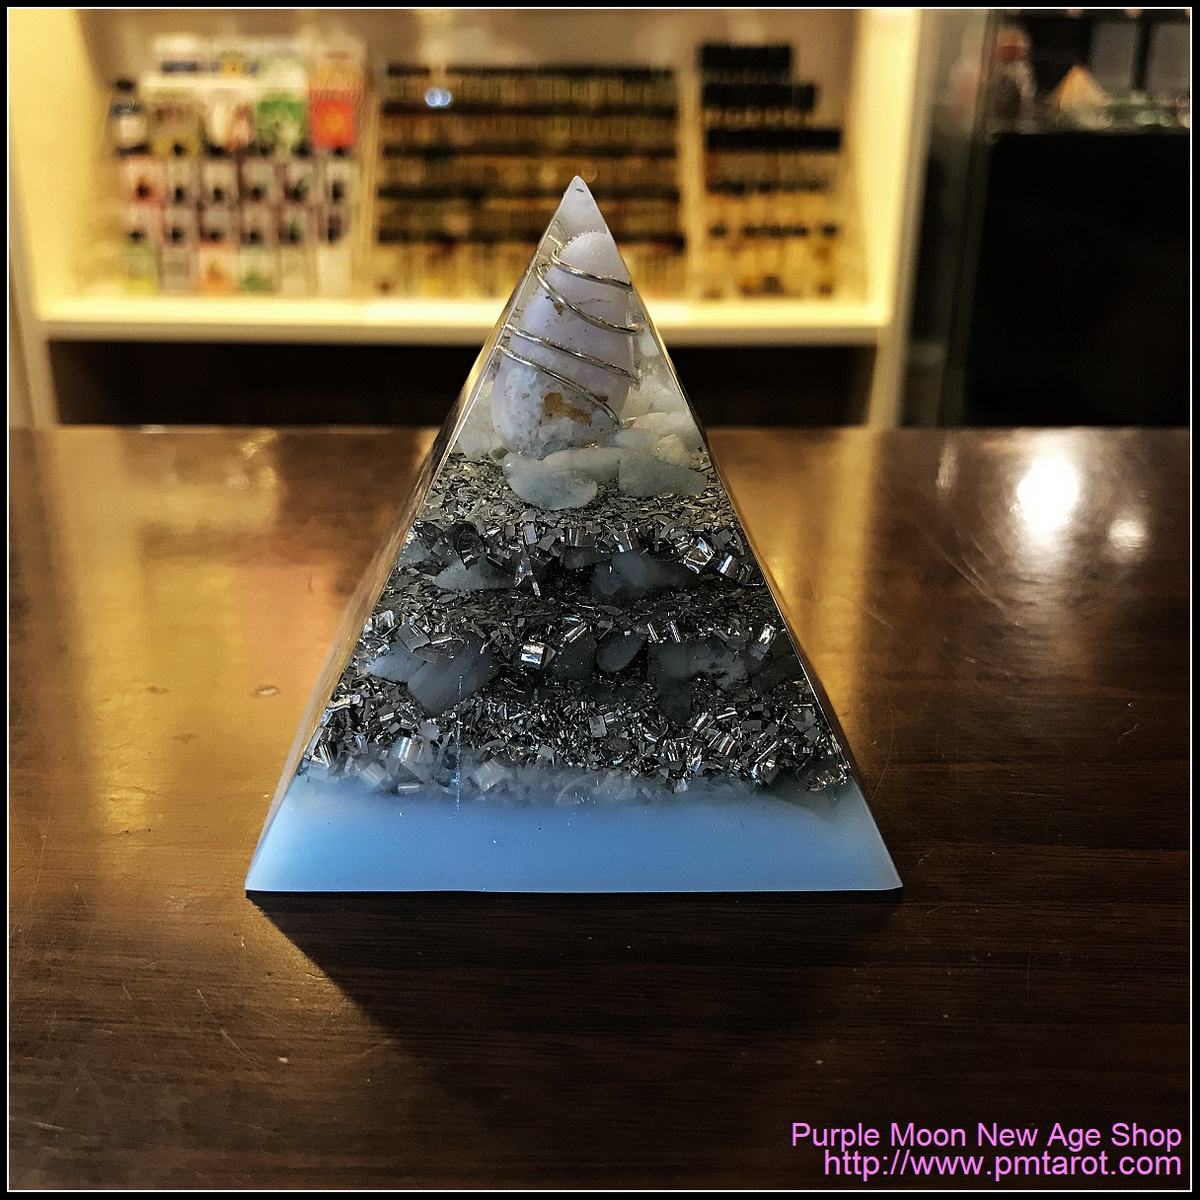 Avalon Magick x Oplusnet - Blue Lace Agate & Aquamarine High Quality Orgonite Pyramid